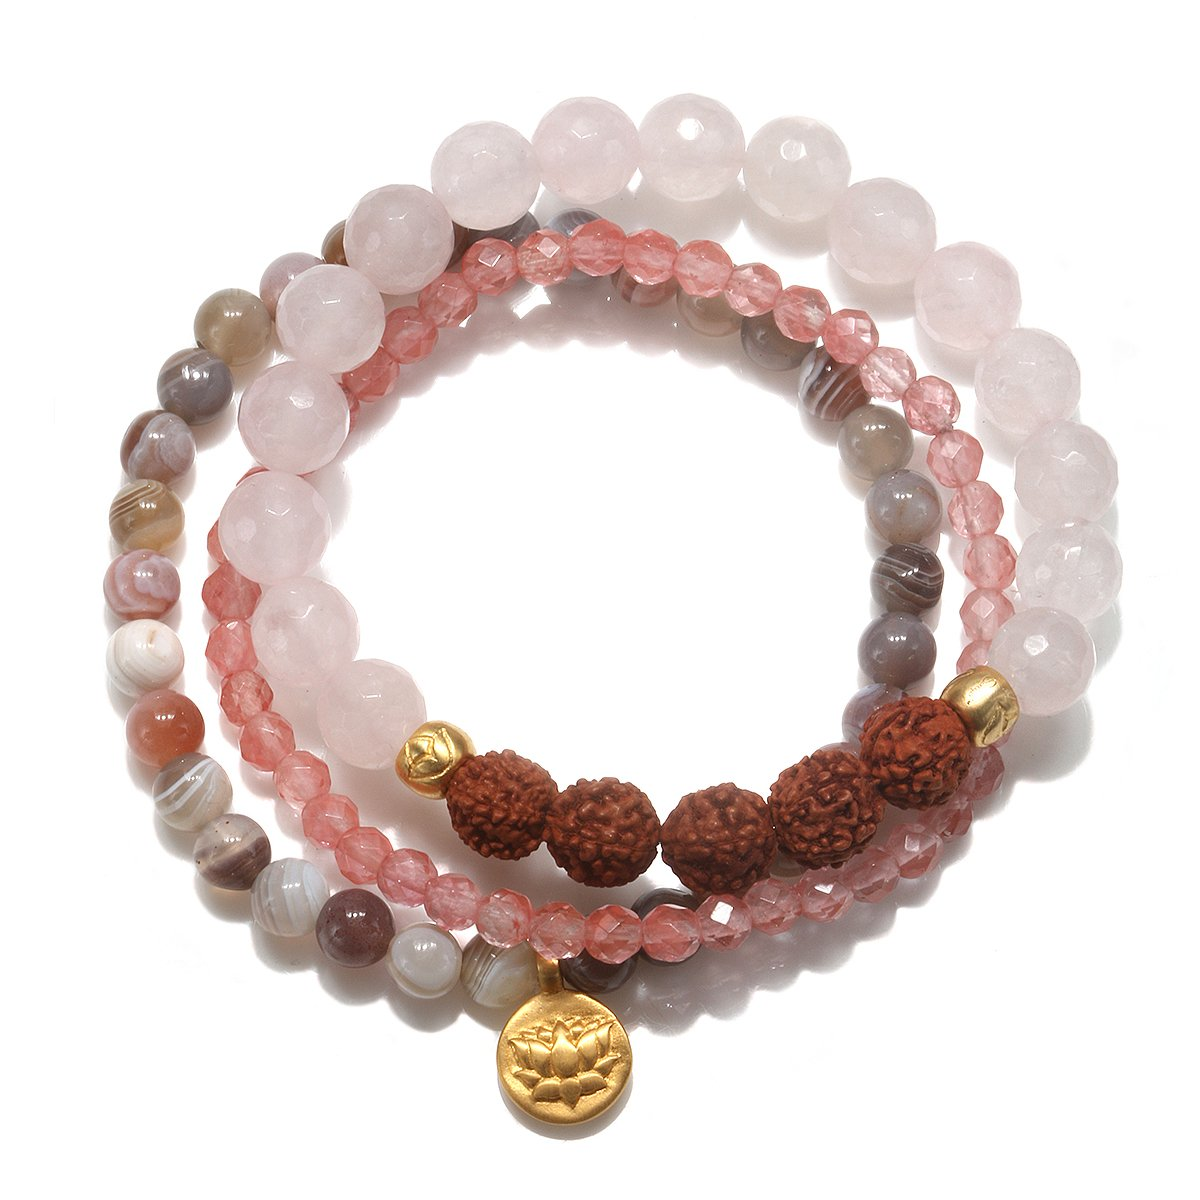 Satya Jewelry Womens Rose Quartz Gold Lotus Stretch Bracelet Set, Pink, One Size